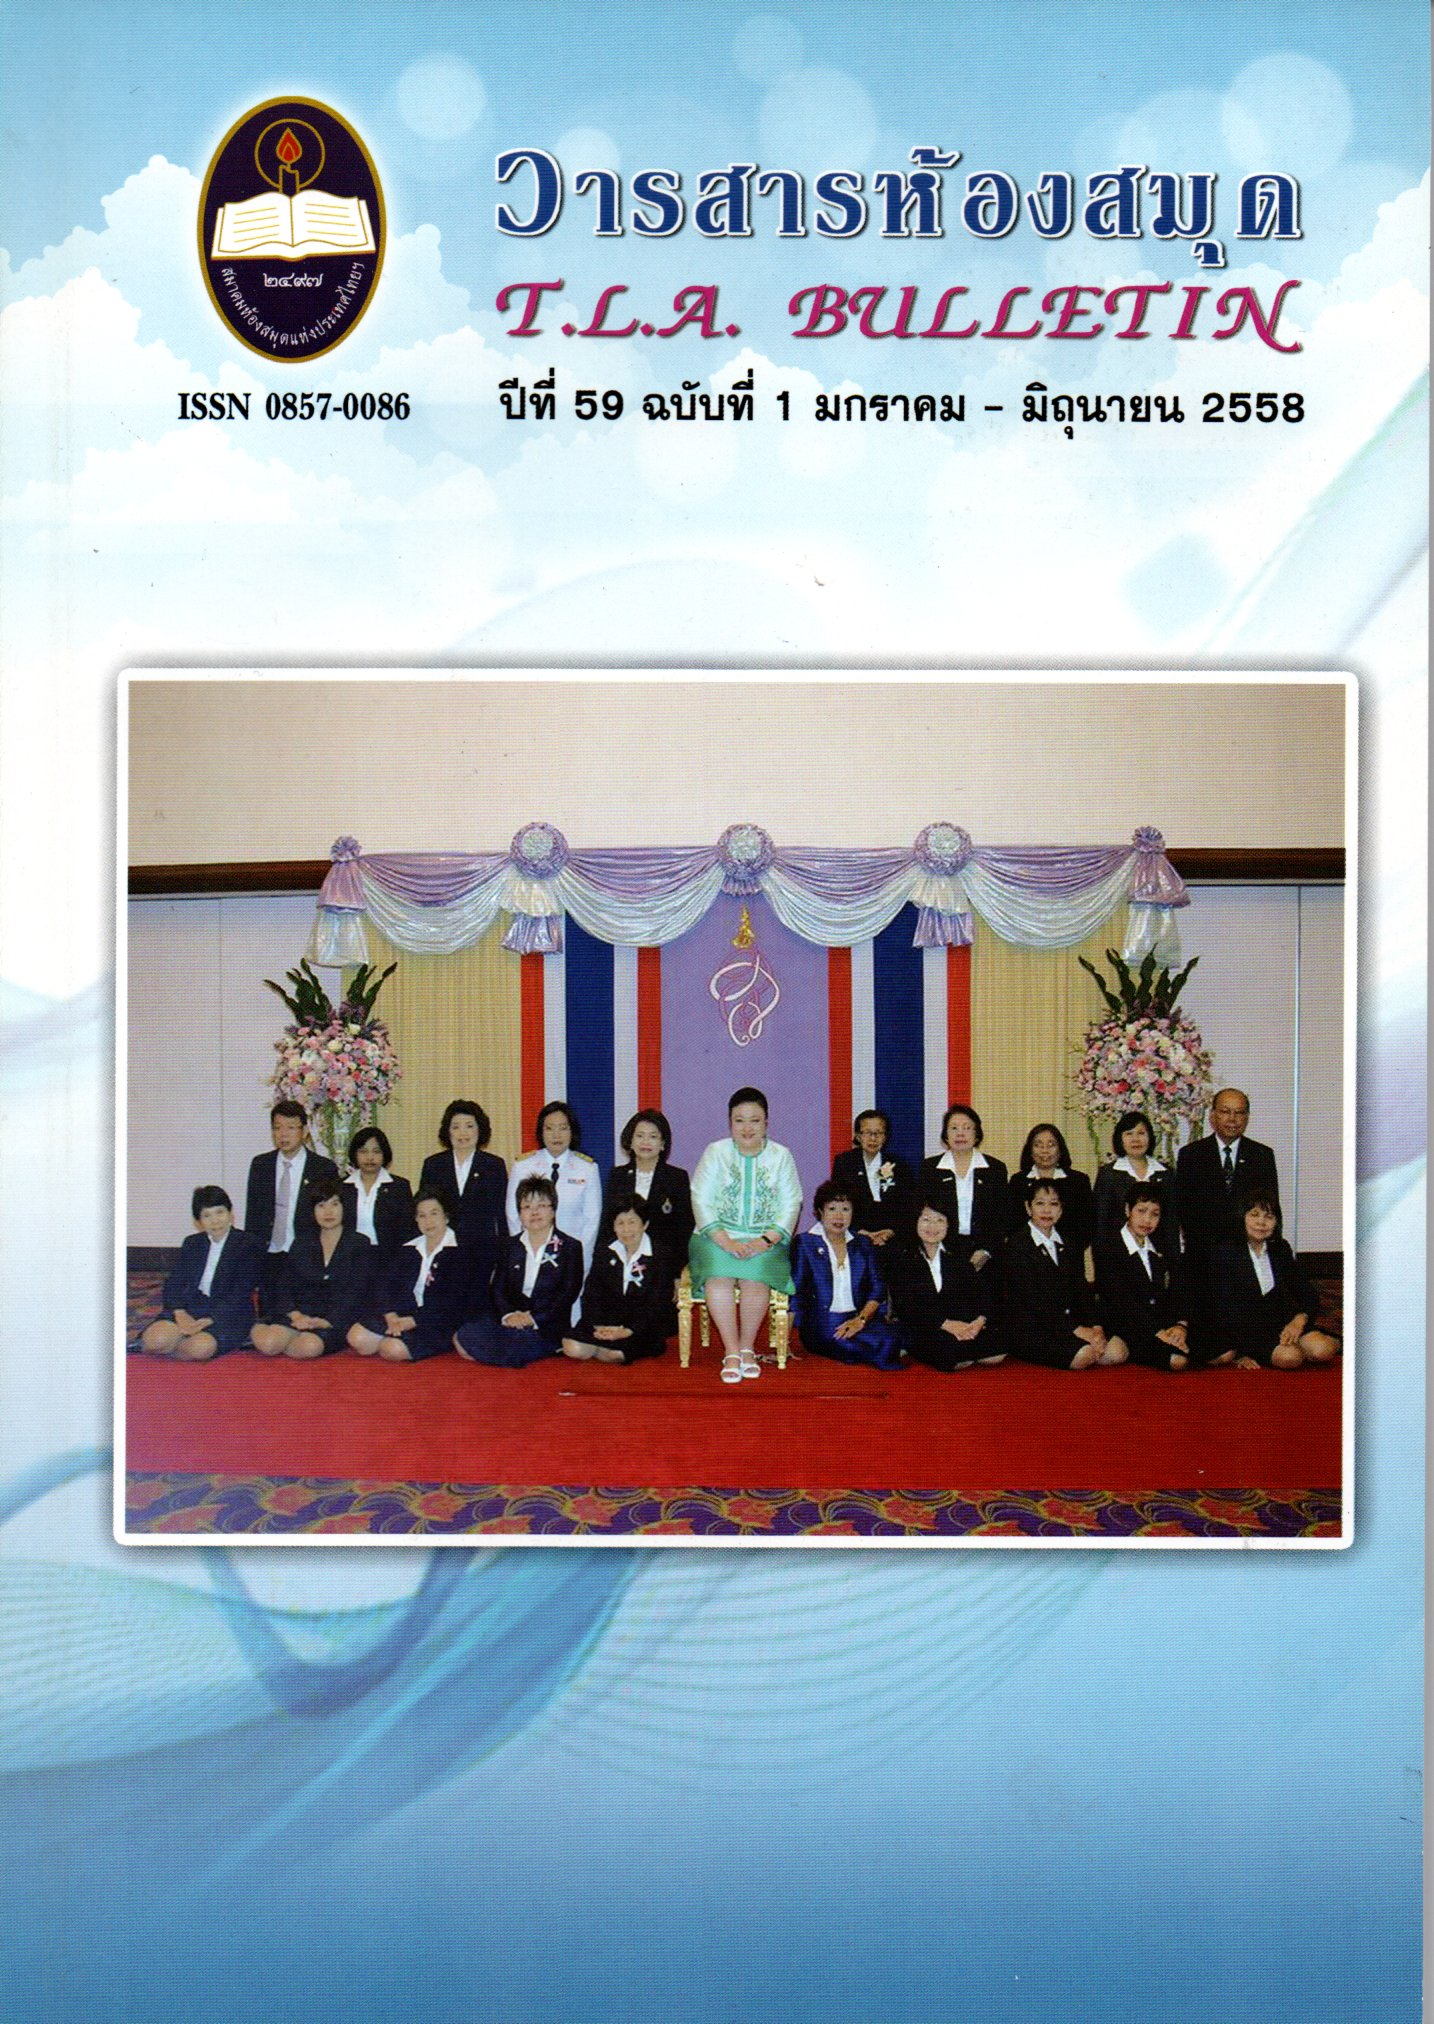 TLA Bulletin, Vol59 No1